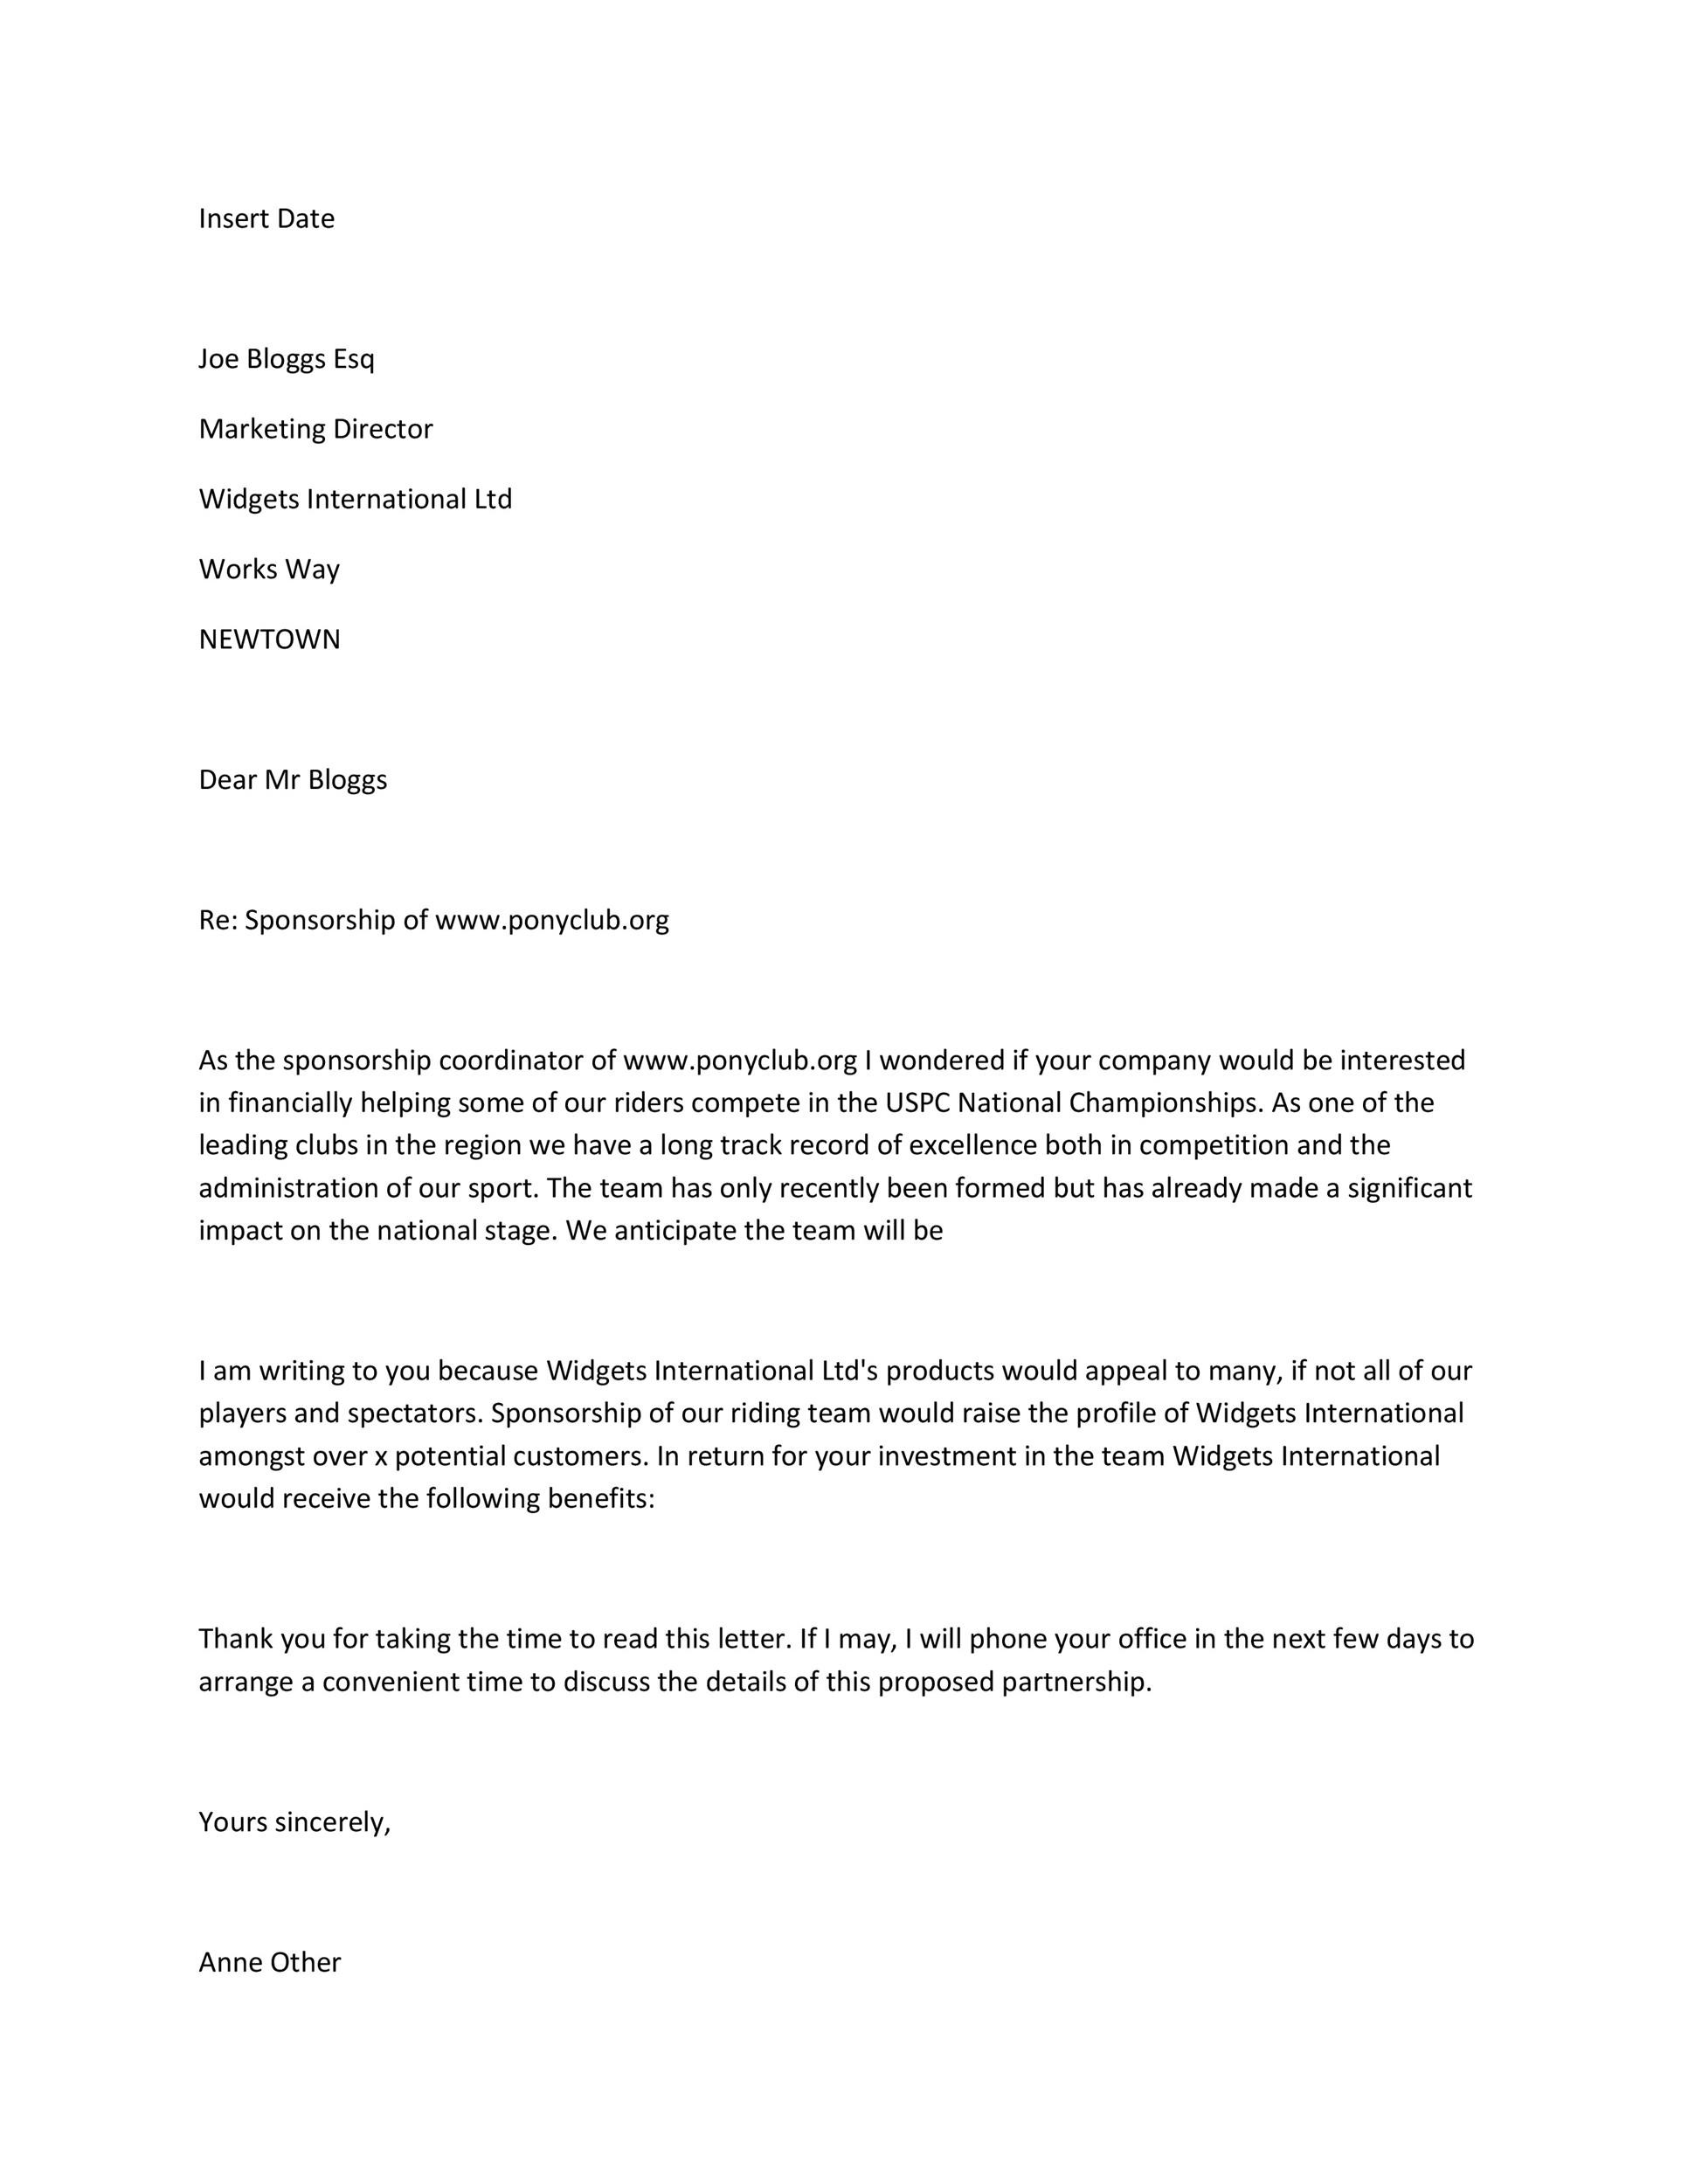 Request For Sponsorship Sample Letter  Docoments Ojazlink